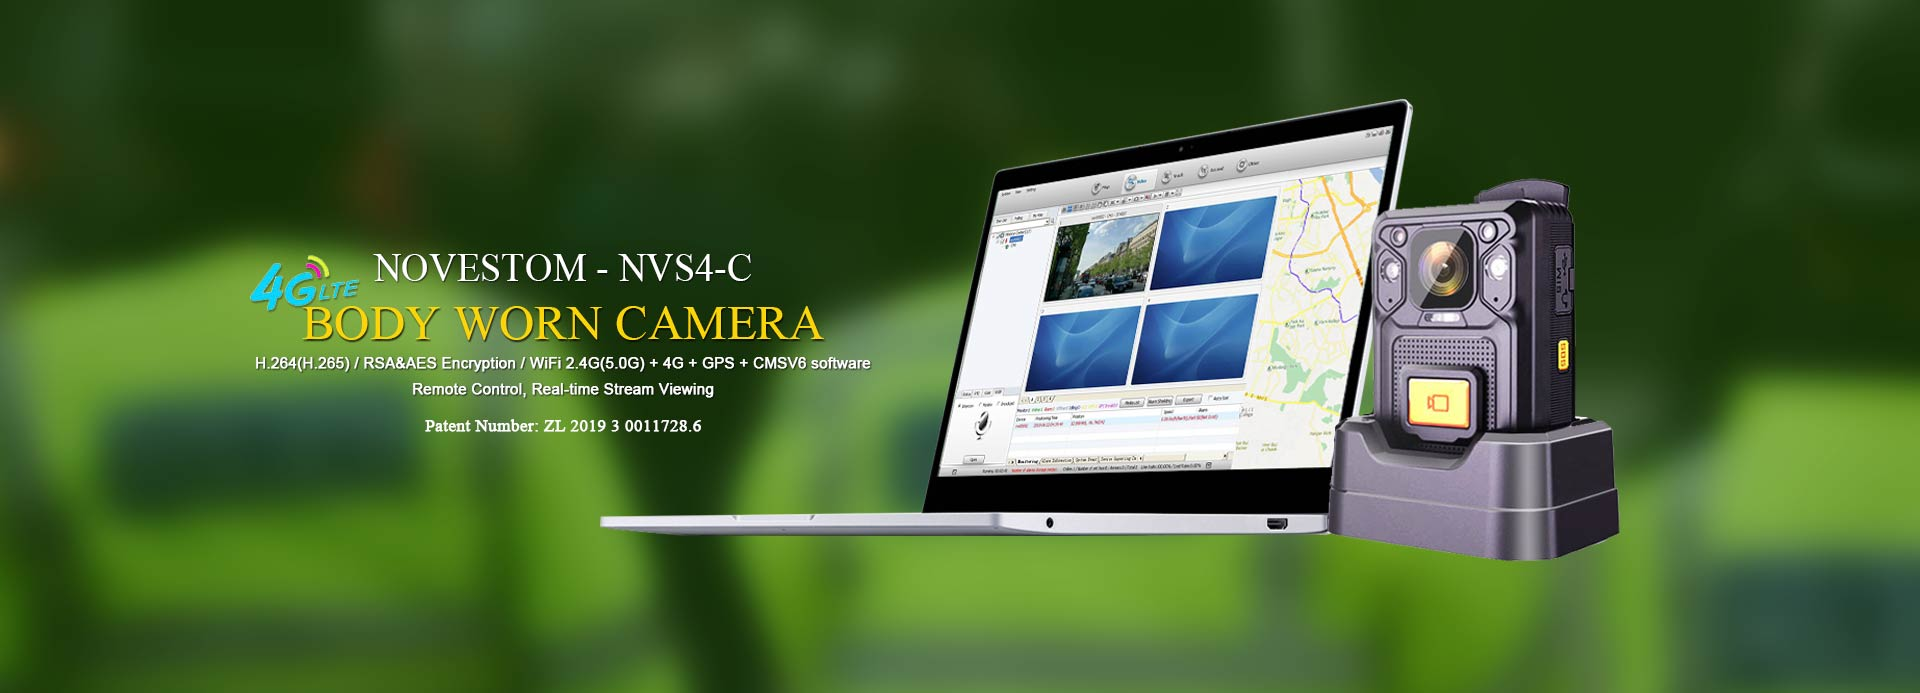 NVS4-C-4G-live-streaming-body-worn-camera-police with SOS GPS WIFI